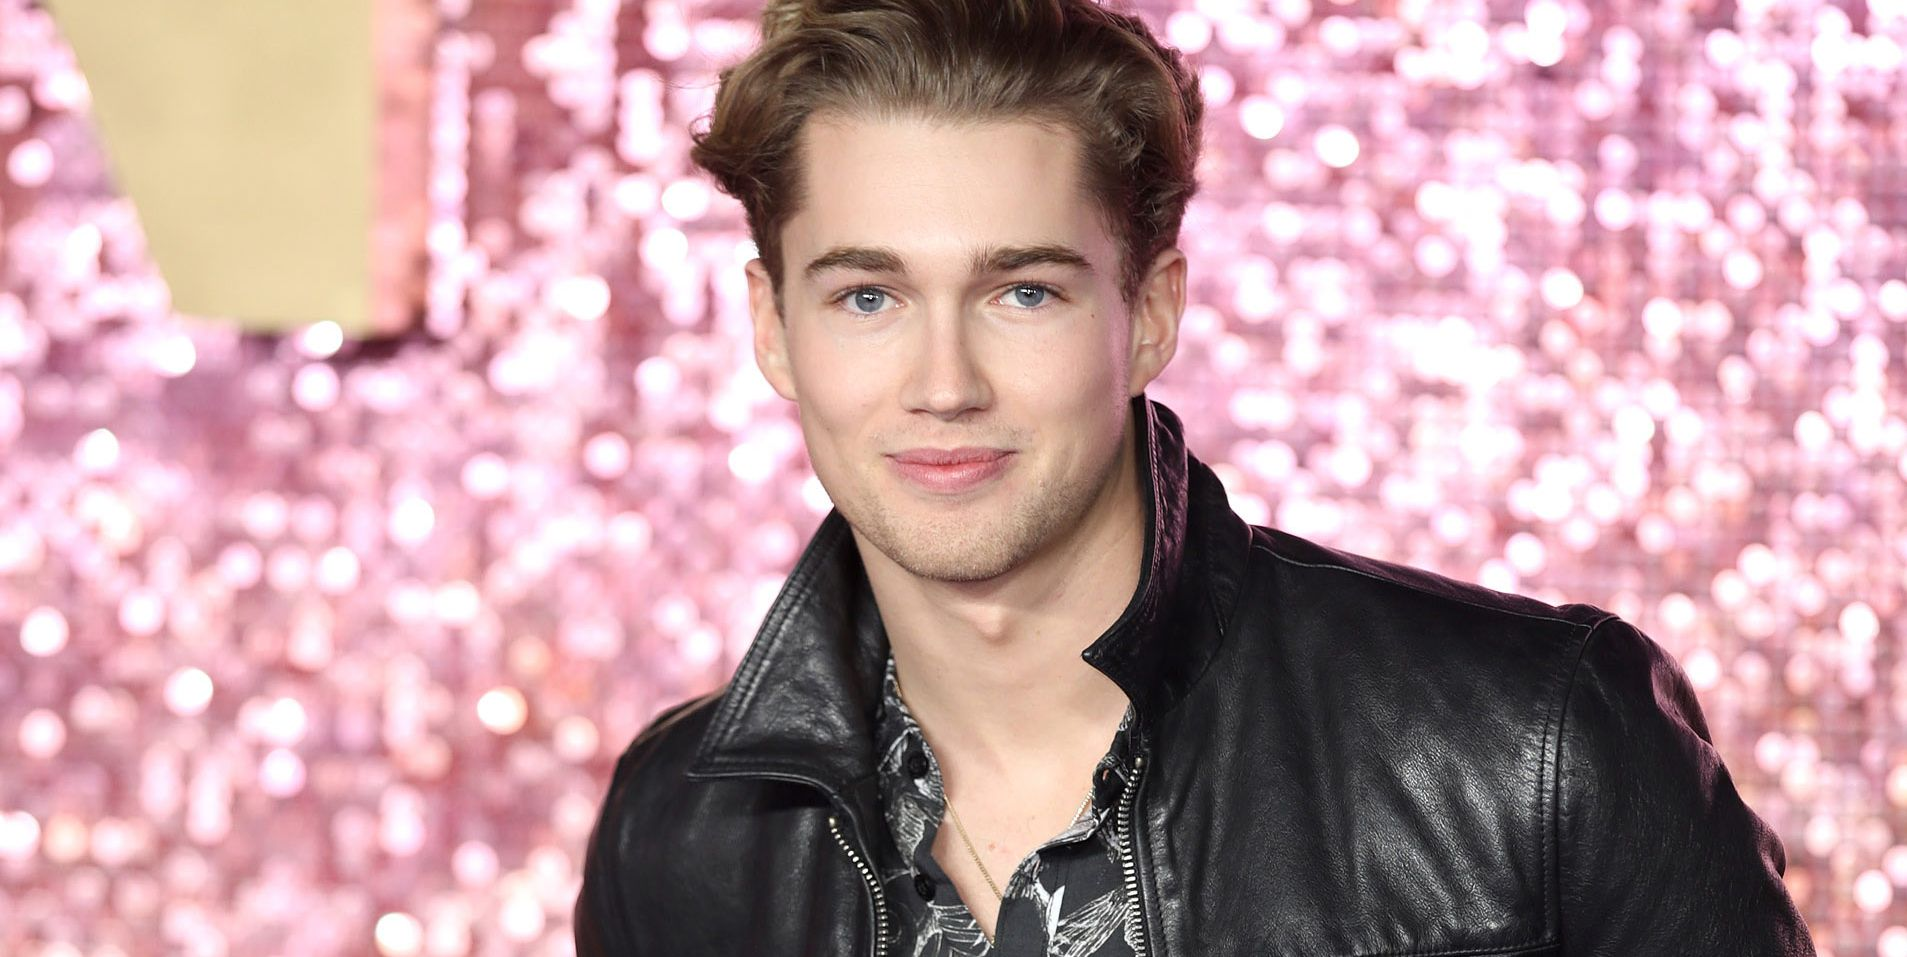 AJ Pritchard pictured in October 2018